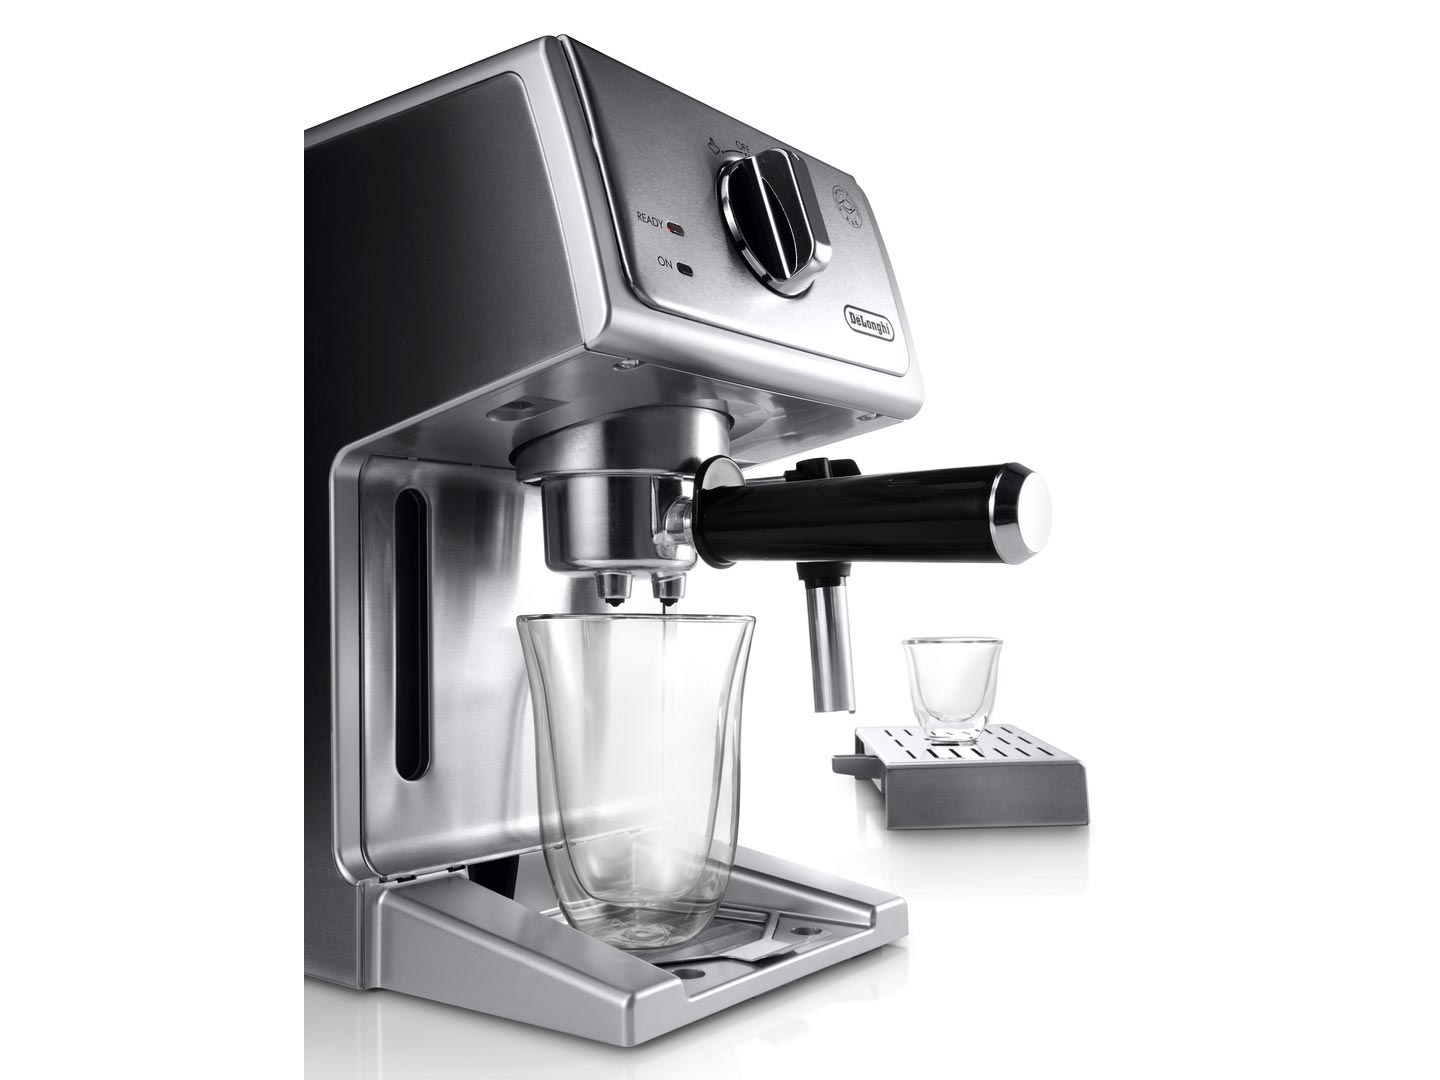 Delonghi 15 Bar Pump Espresso Latte Cappuccino Maker Stainless Steel ECP3630